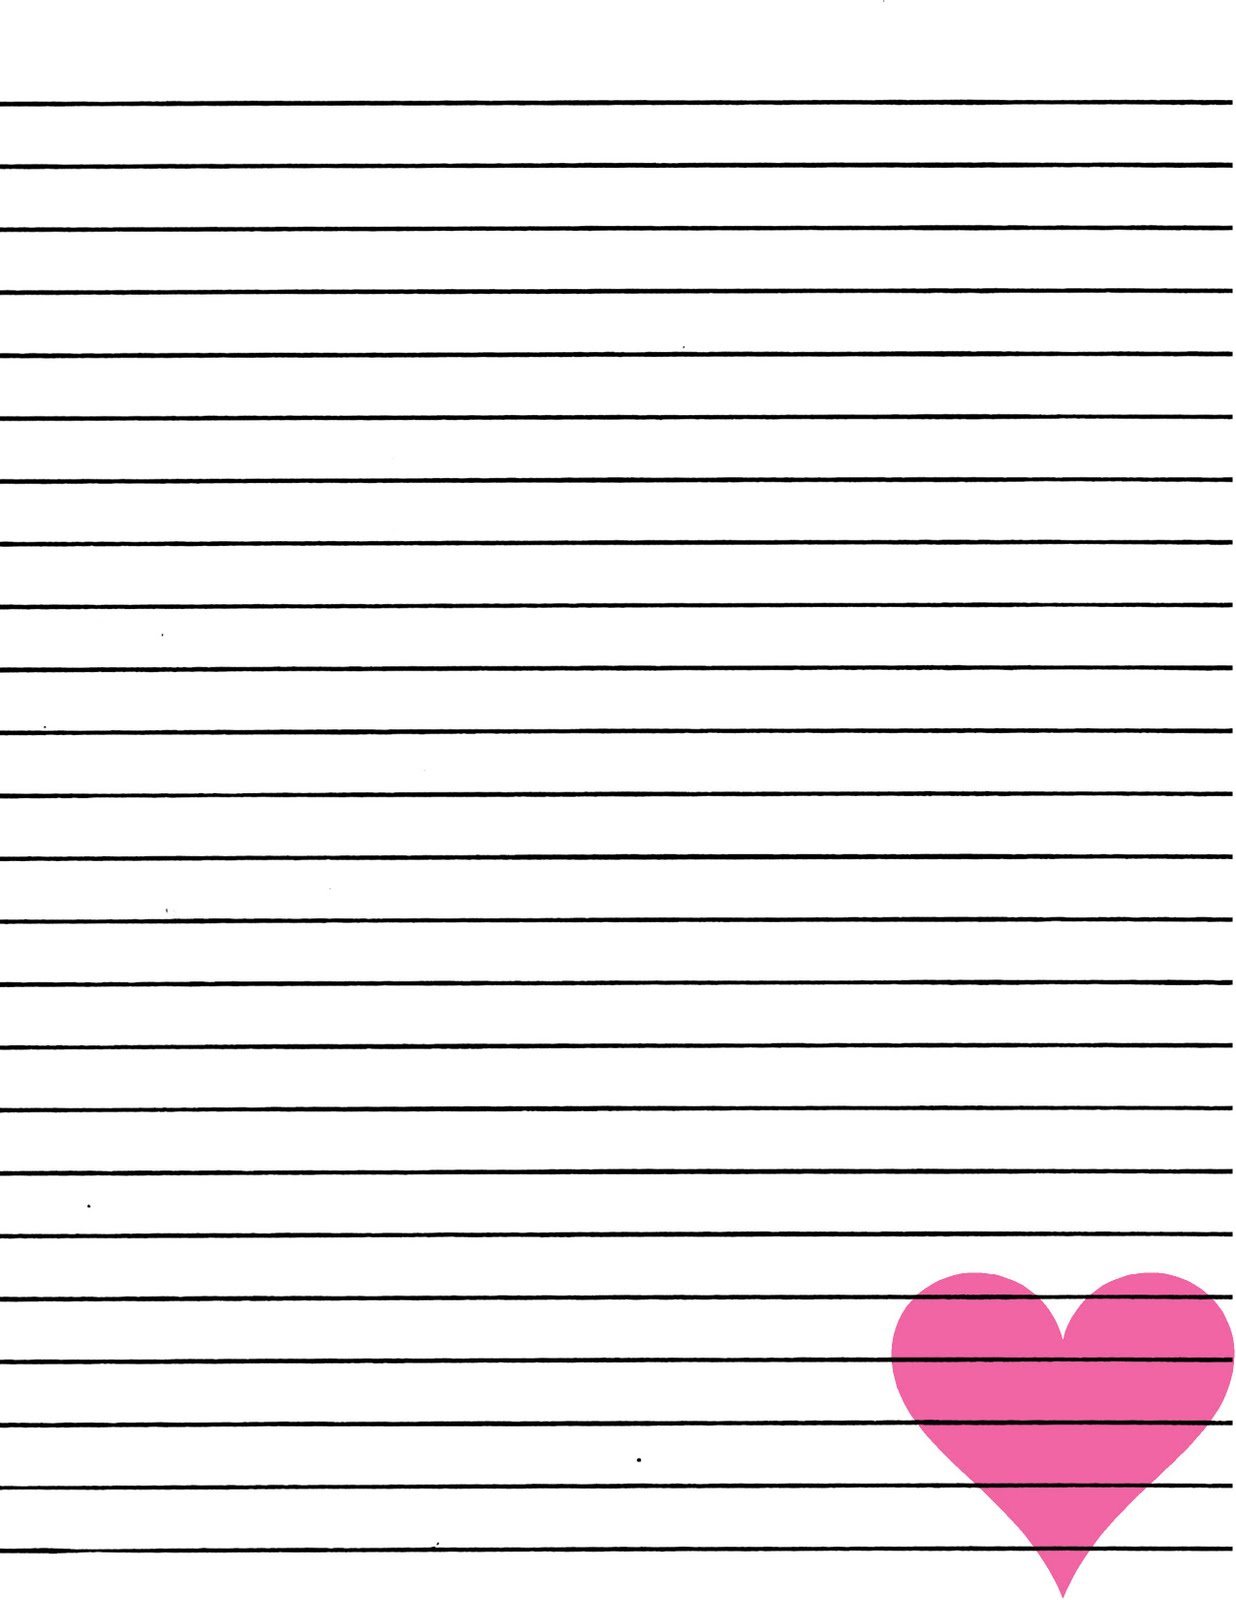 Simplicity image with lined paper printable pdf